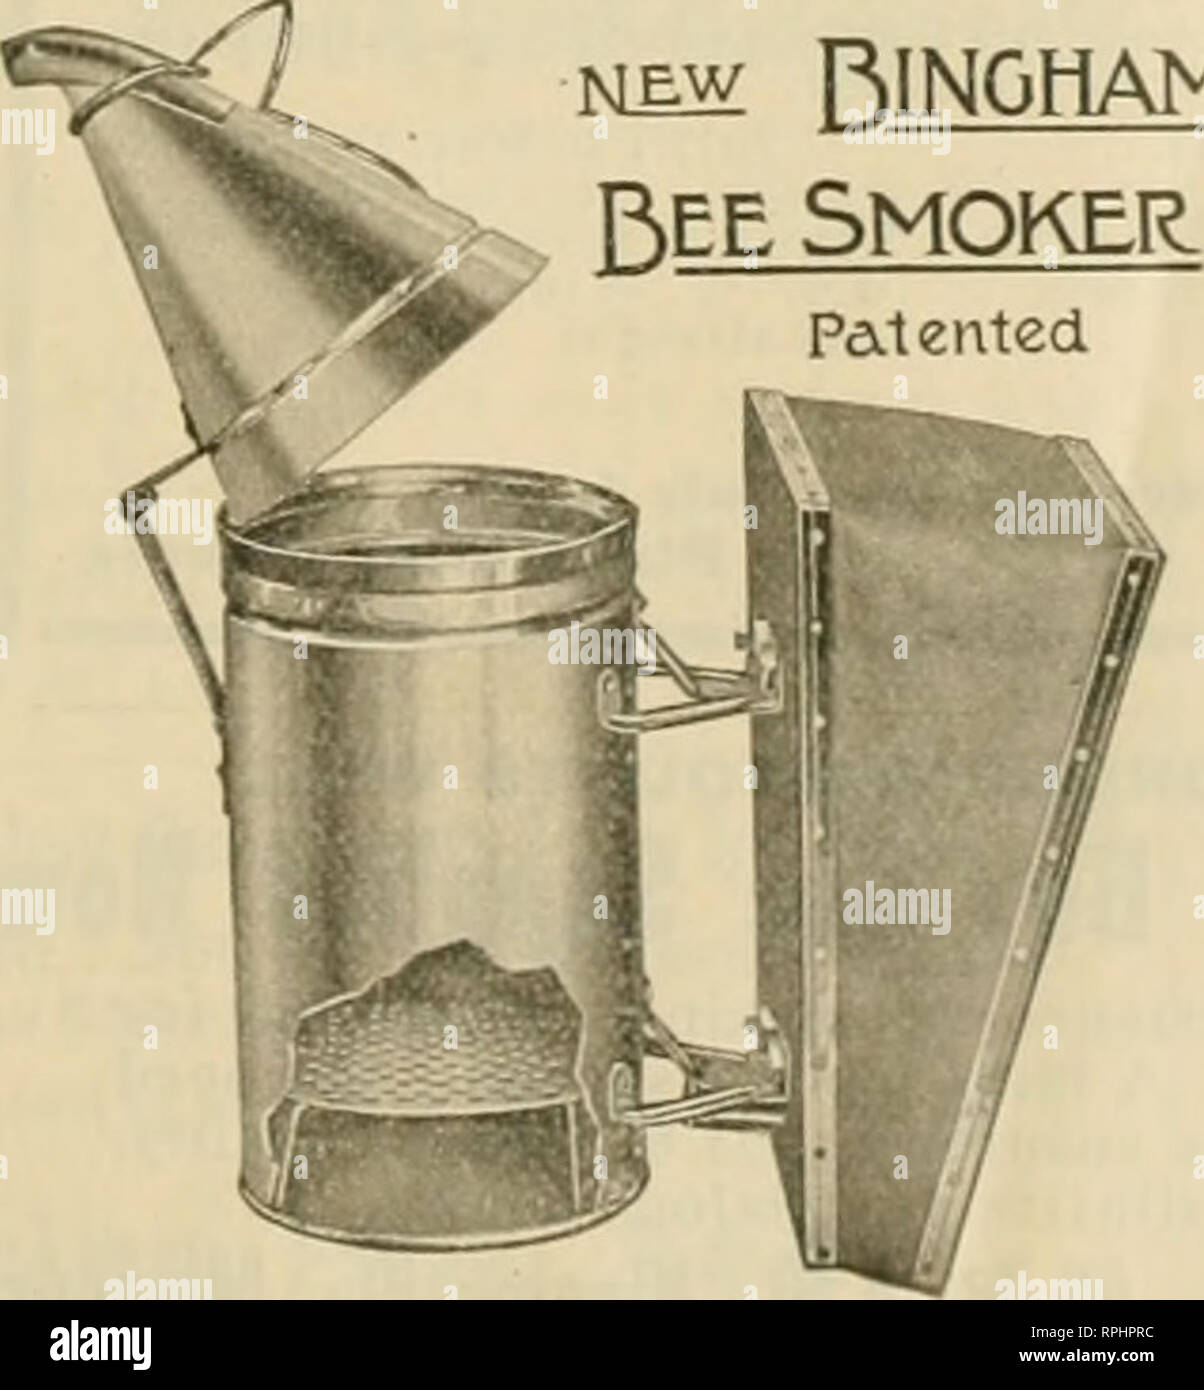 """. American bee journal. Bee culture; Bees. 51NGHAM ^^^ ''®"""" Bingham Bee-Smoker the all important tool of the most ex- tensive honey-producers of the world. This illustration shows the remarkable steel-fire grate which such men as Mr. France, Mr. Rauchfuss, the Dadants and others say is the best on the mar- ket. The Smoke Engine grate has 381 holes for the air and draft, equal to an opening 2 inches square. Buy the large sizes and be pleased. For sale at your dealers or direct. Weight each. Smoke Kngine 4-inch stove i^lbs. $1.25 Doctor • 3!4-inch stove..ifi """" .8s Two largersizes in co - Stock Image"""